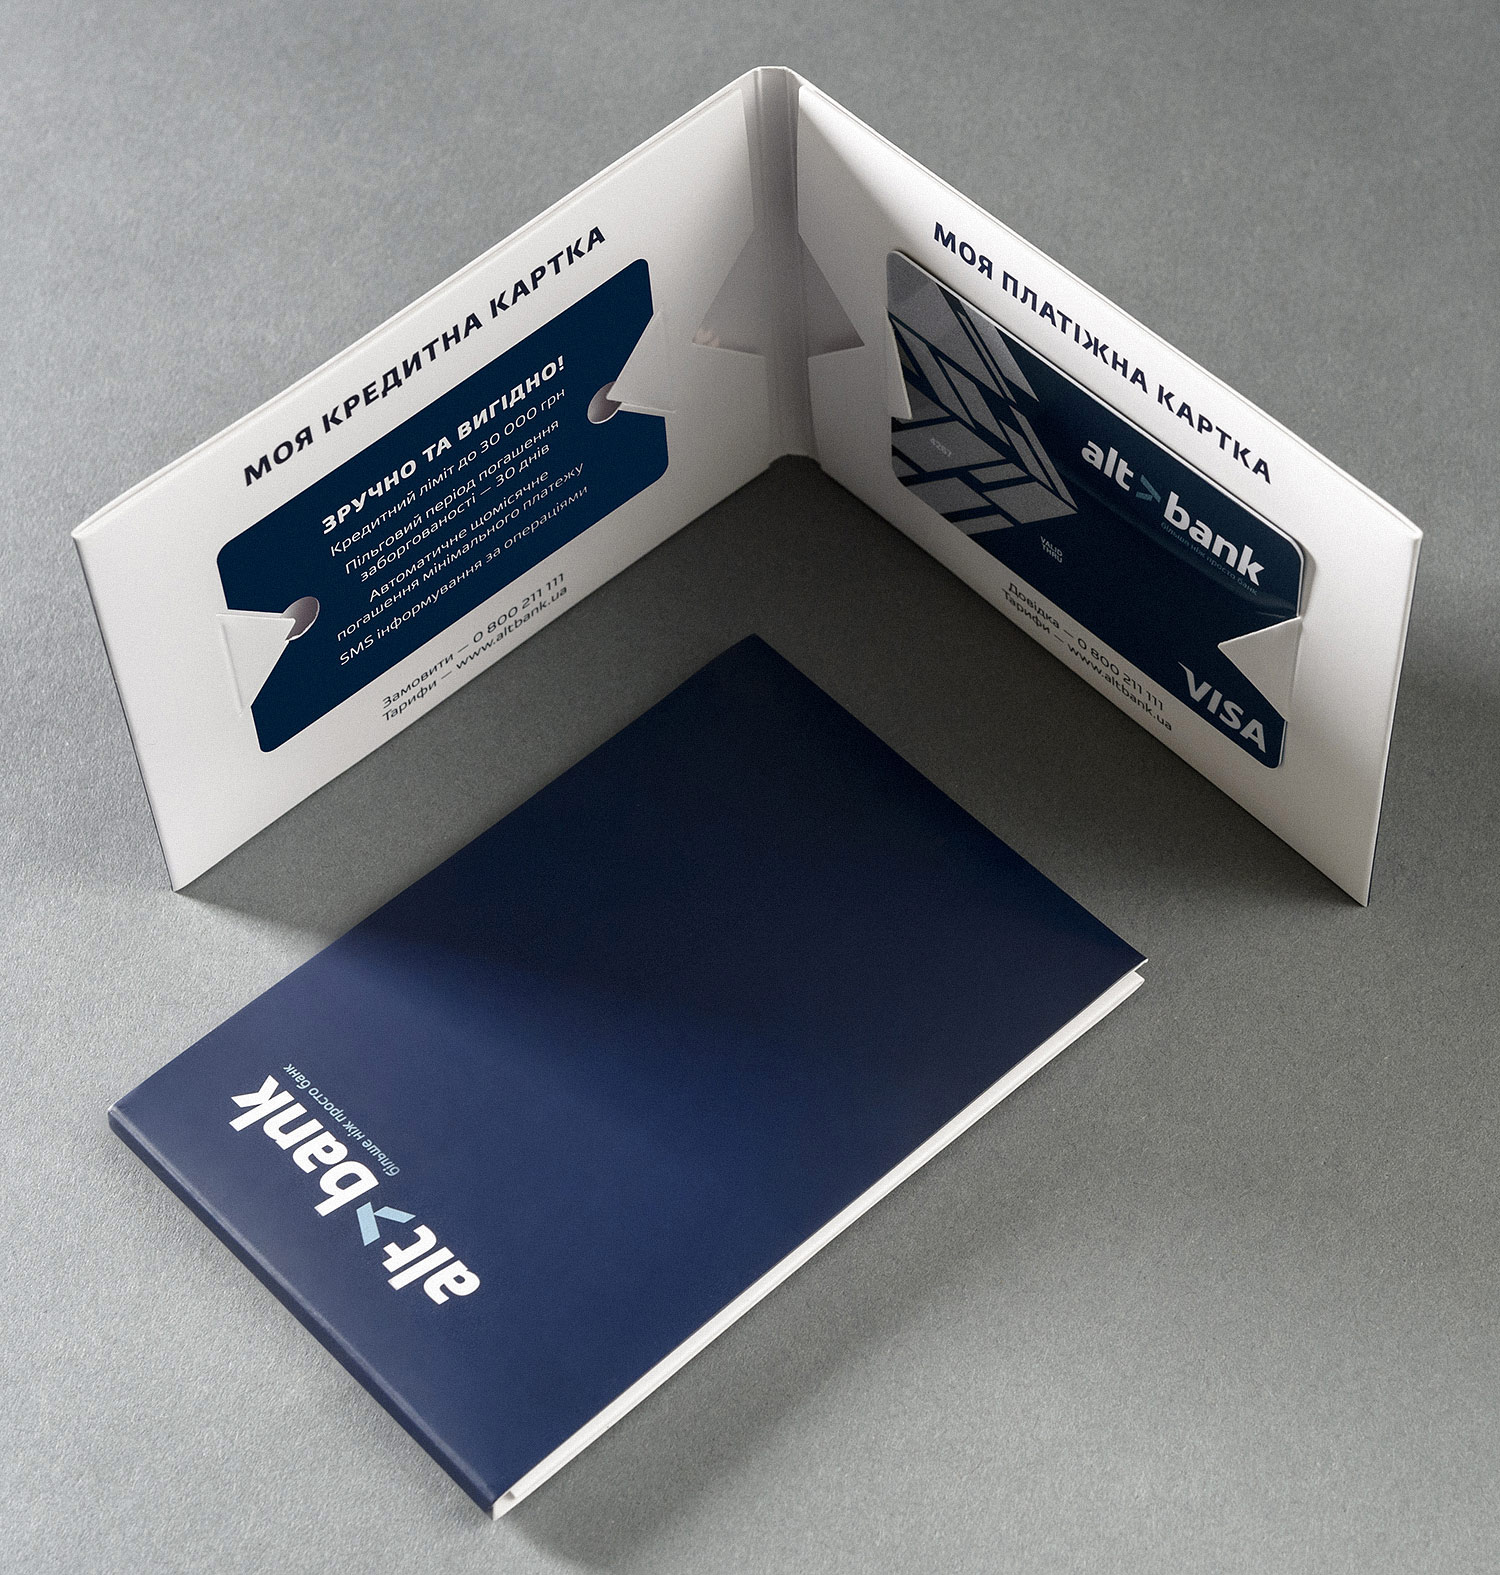 Cardboard packaging design for plastic cards. Credit and debit cards in one Altbank package.